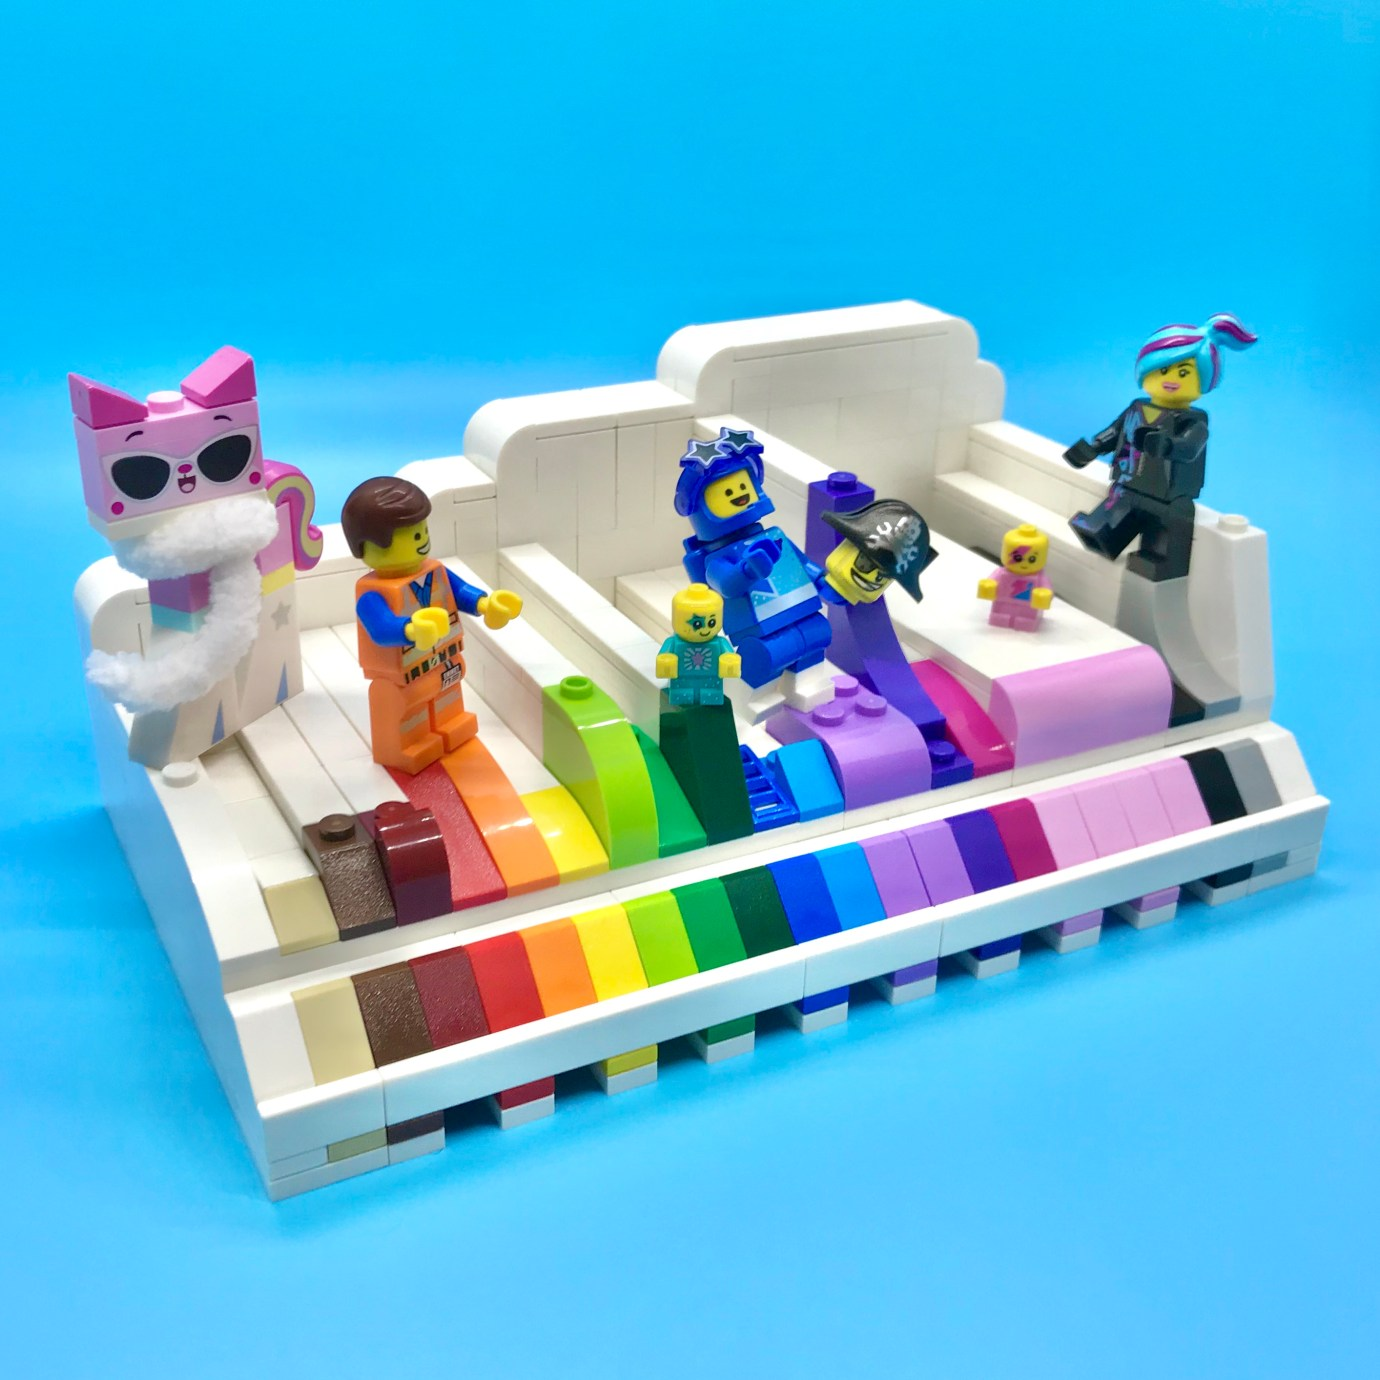 A group of LEGO minifigures dance on a color coded LEGO slope display.